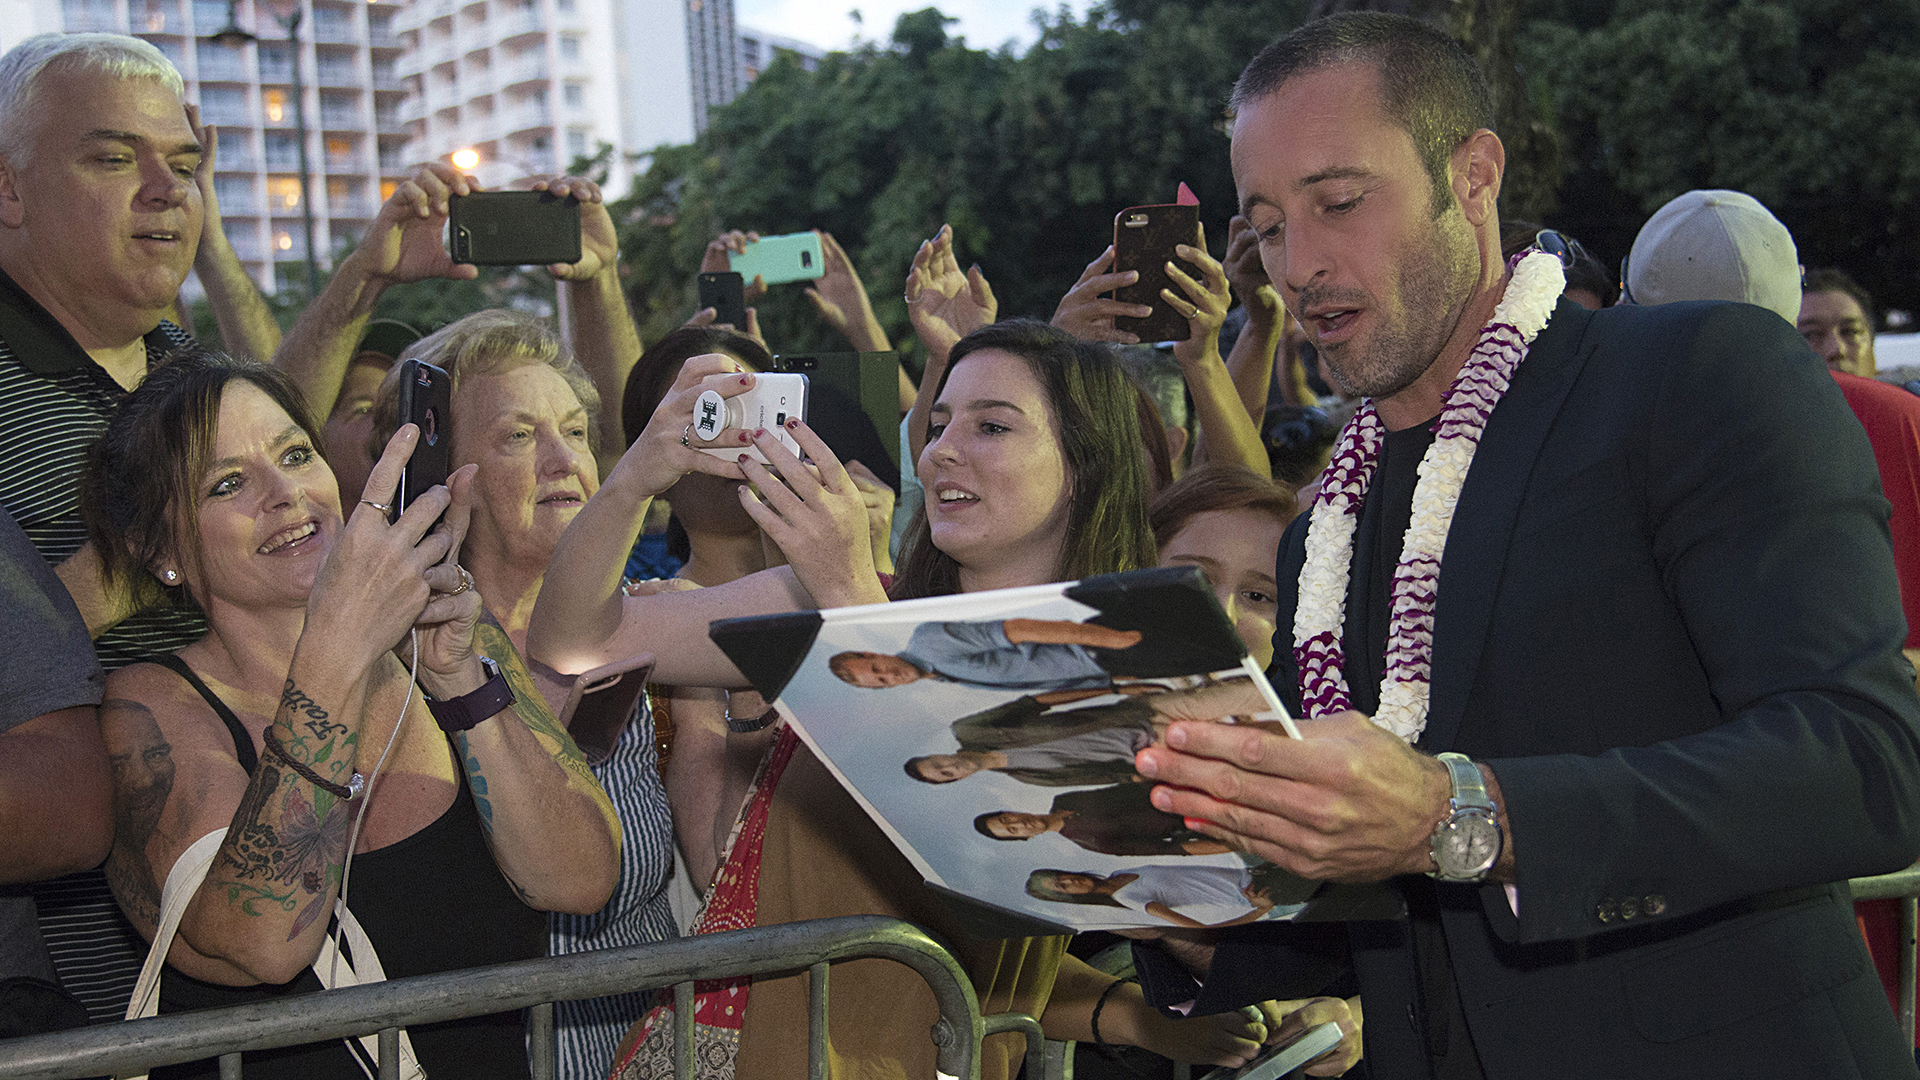 Alex O'Loughlin autographs show art for fans while walking the red carpet.